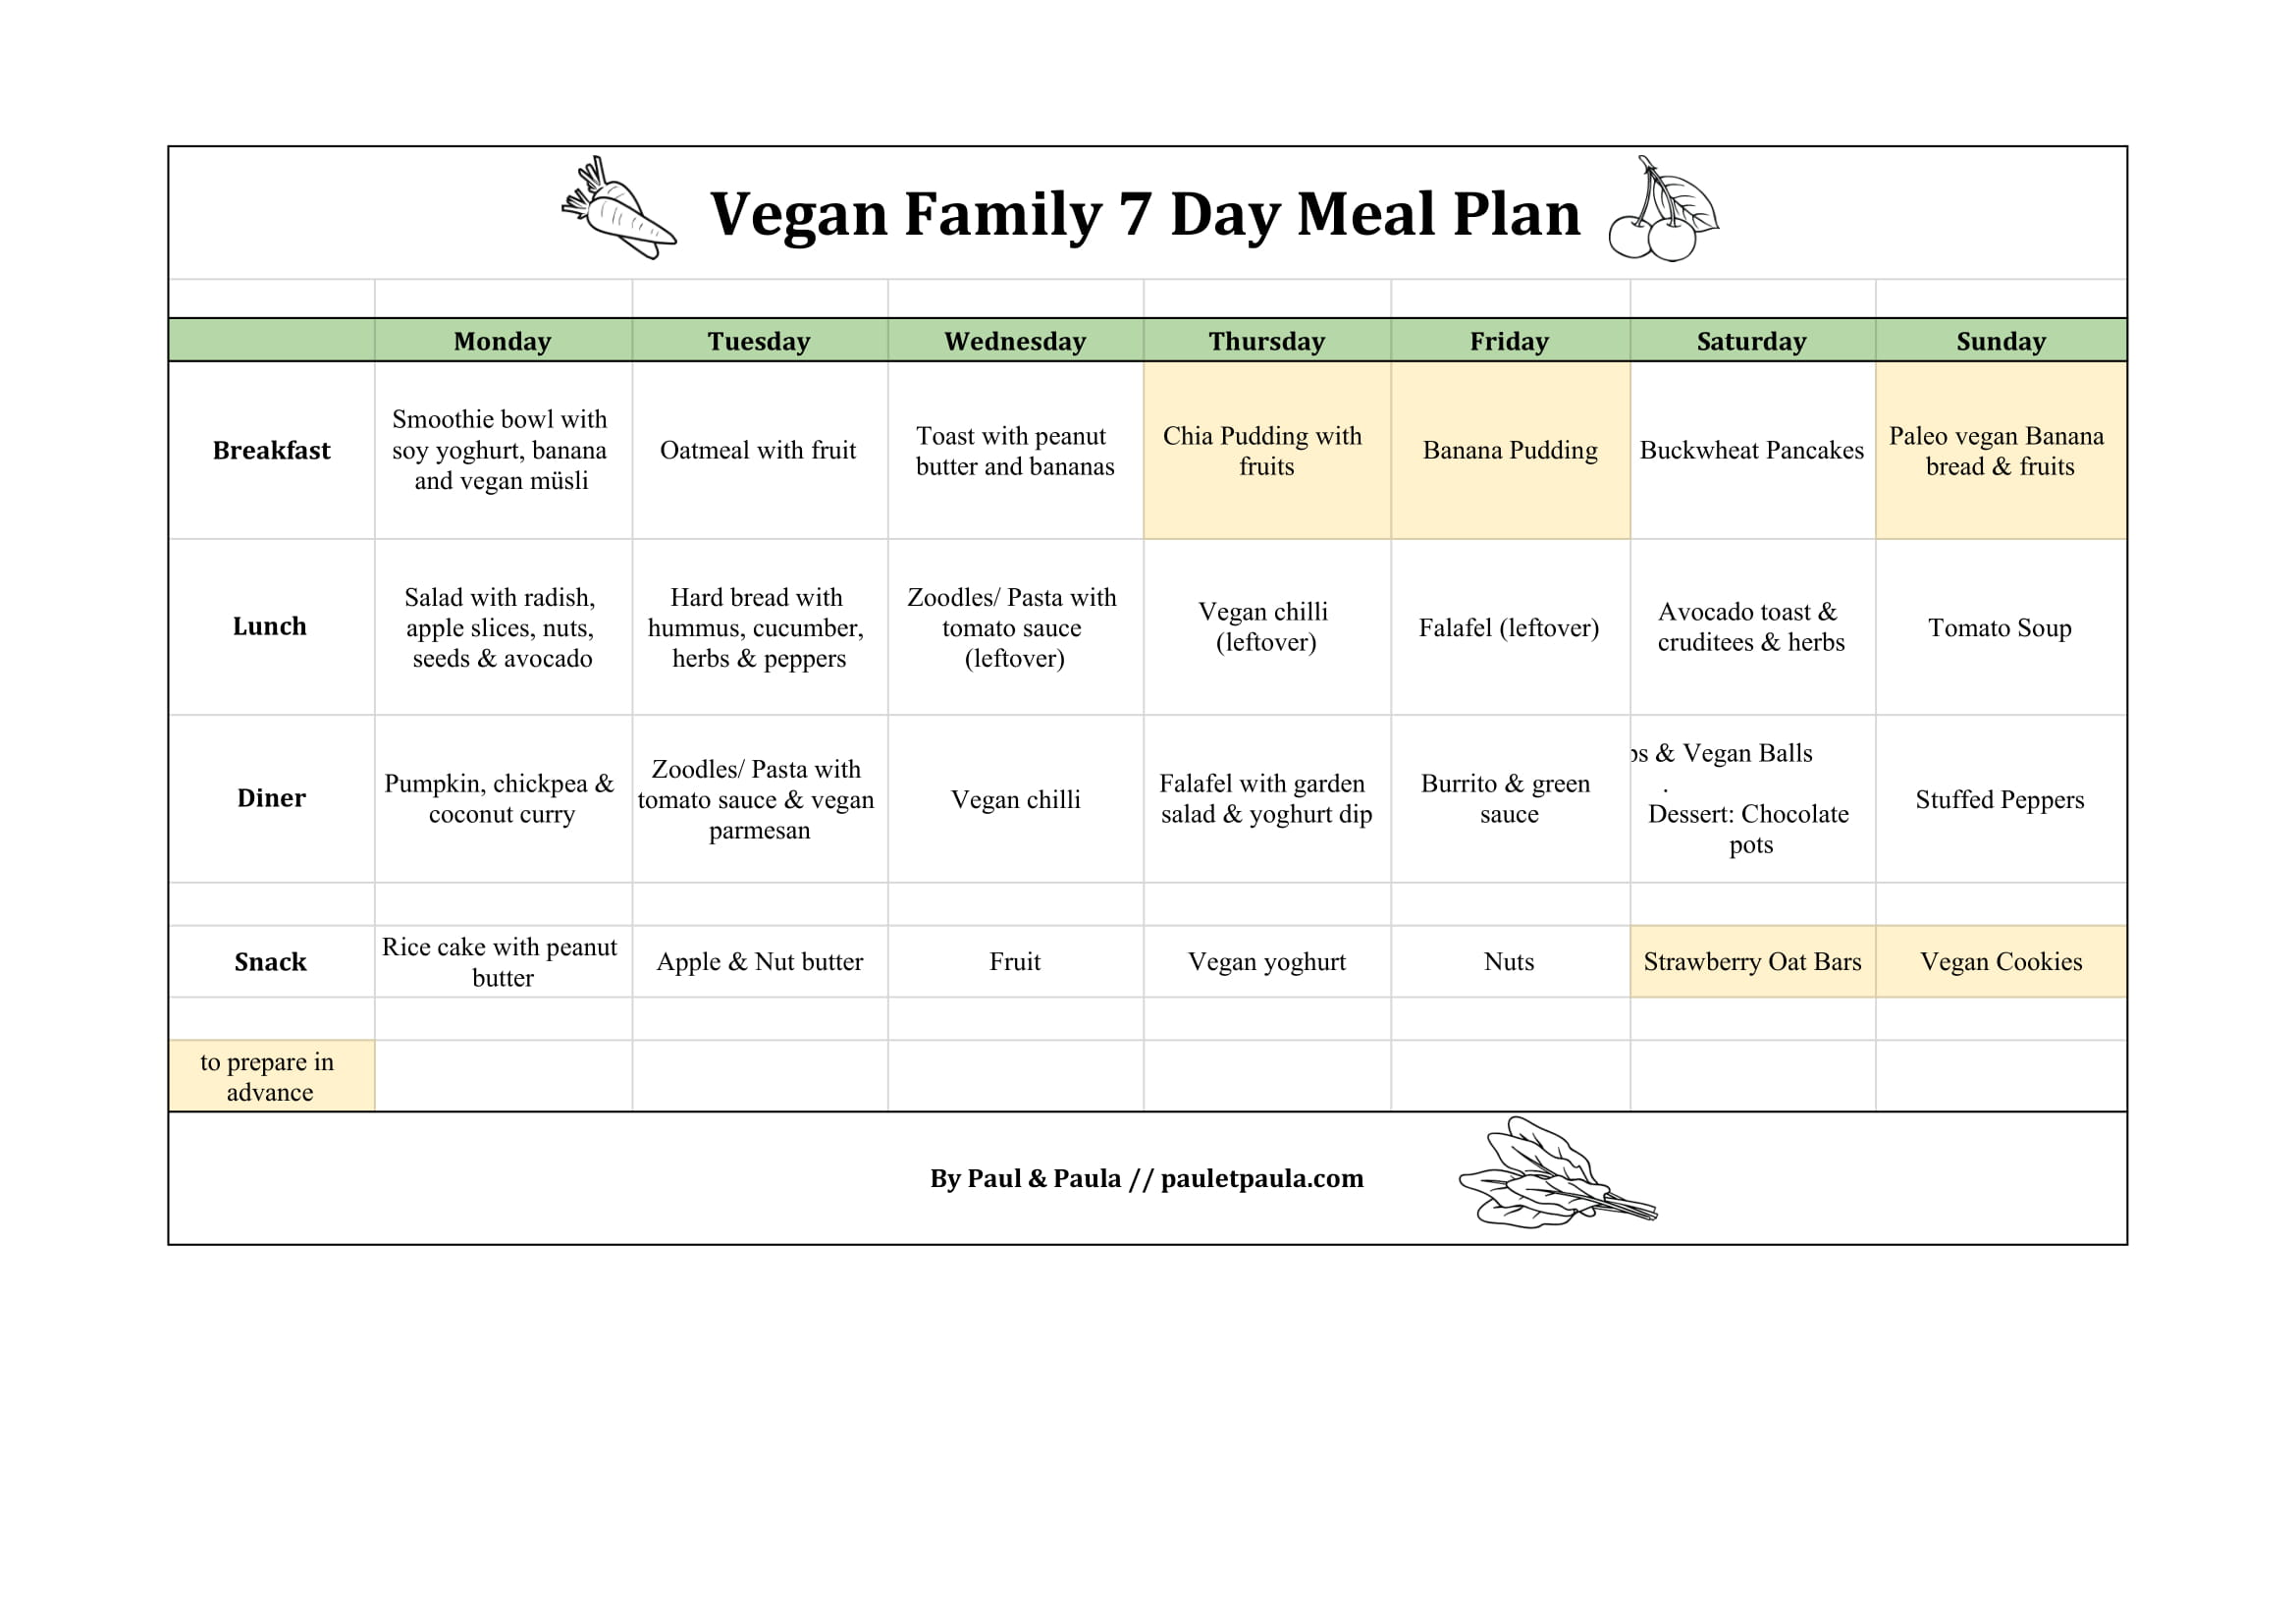 Paul & Paula: weekly vegan family meal plan